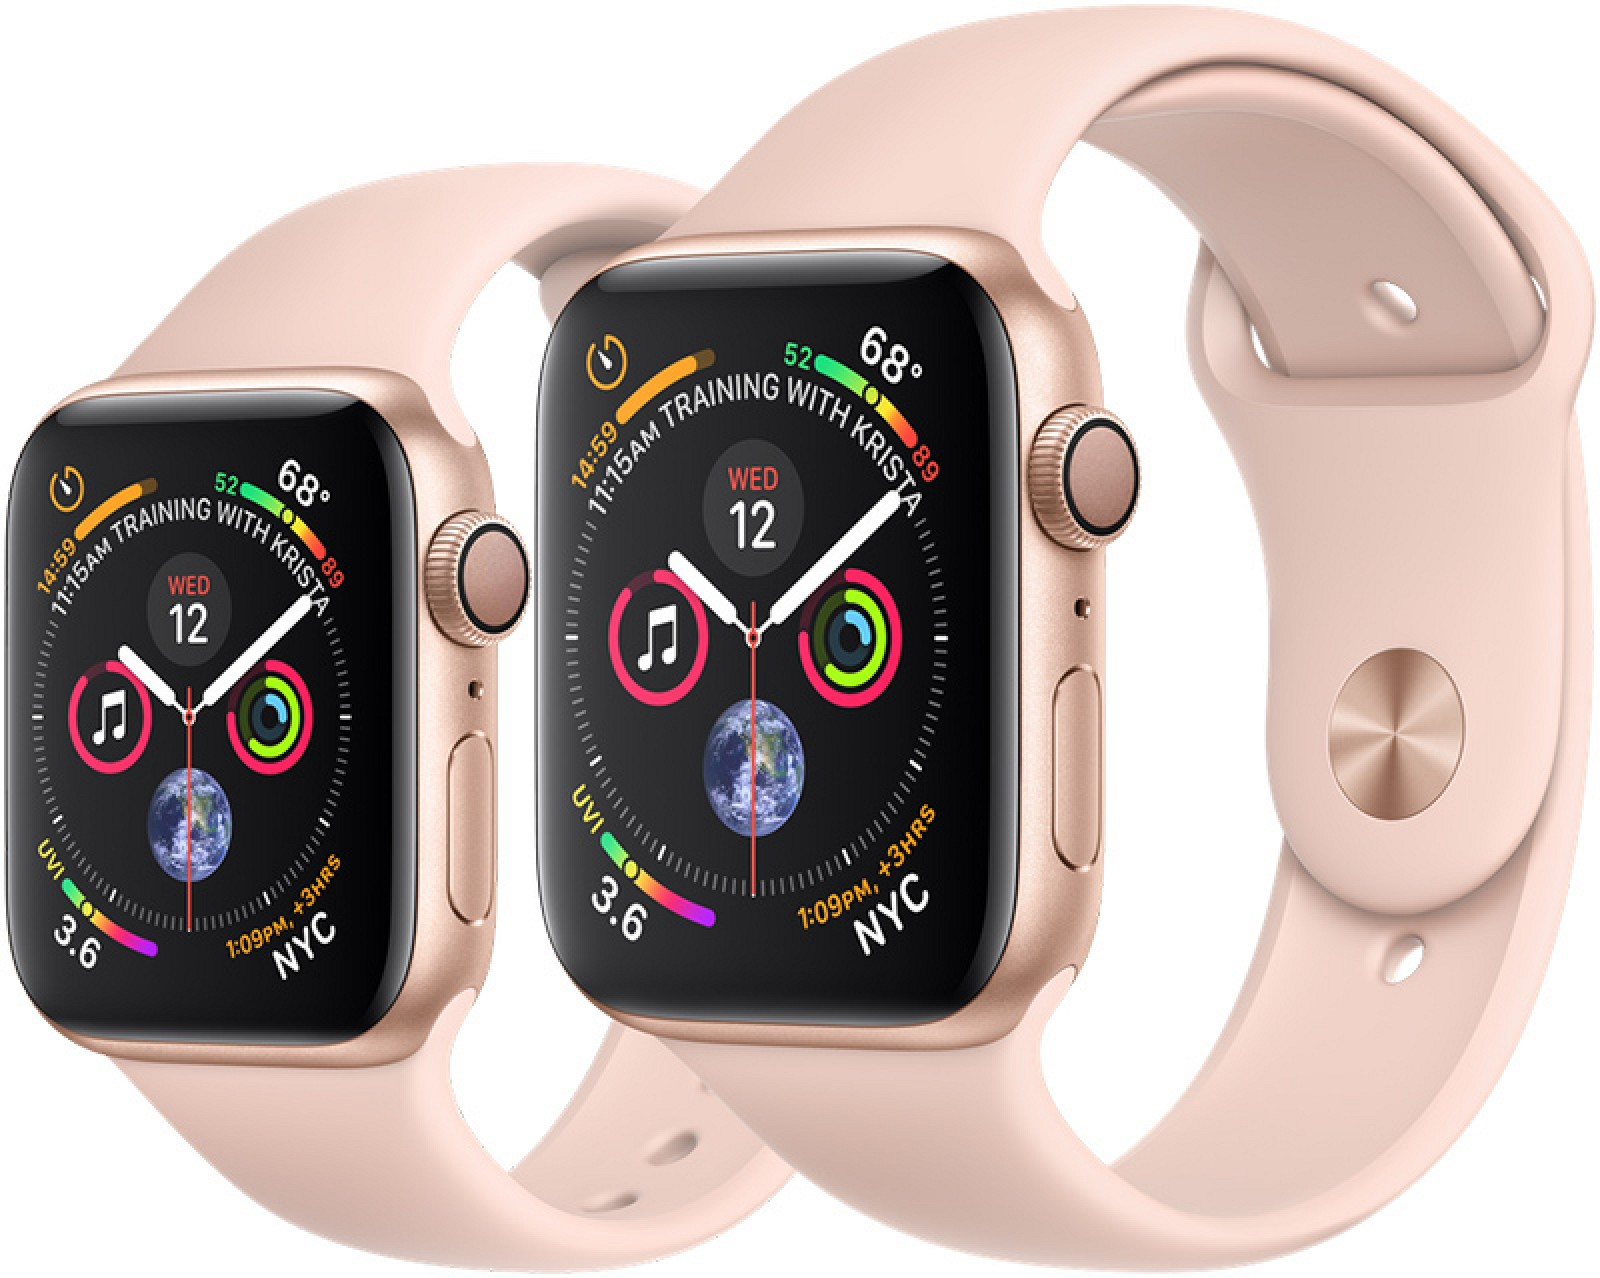 Apple Releases watchOS 5.1.3 With Bug Fixes and Performance Improvements - MacRumors